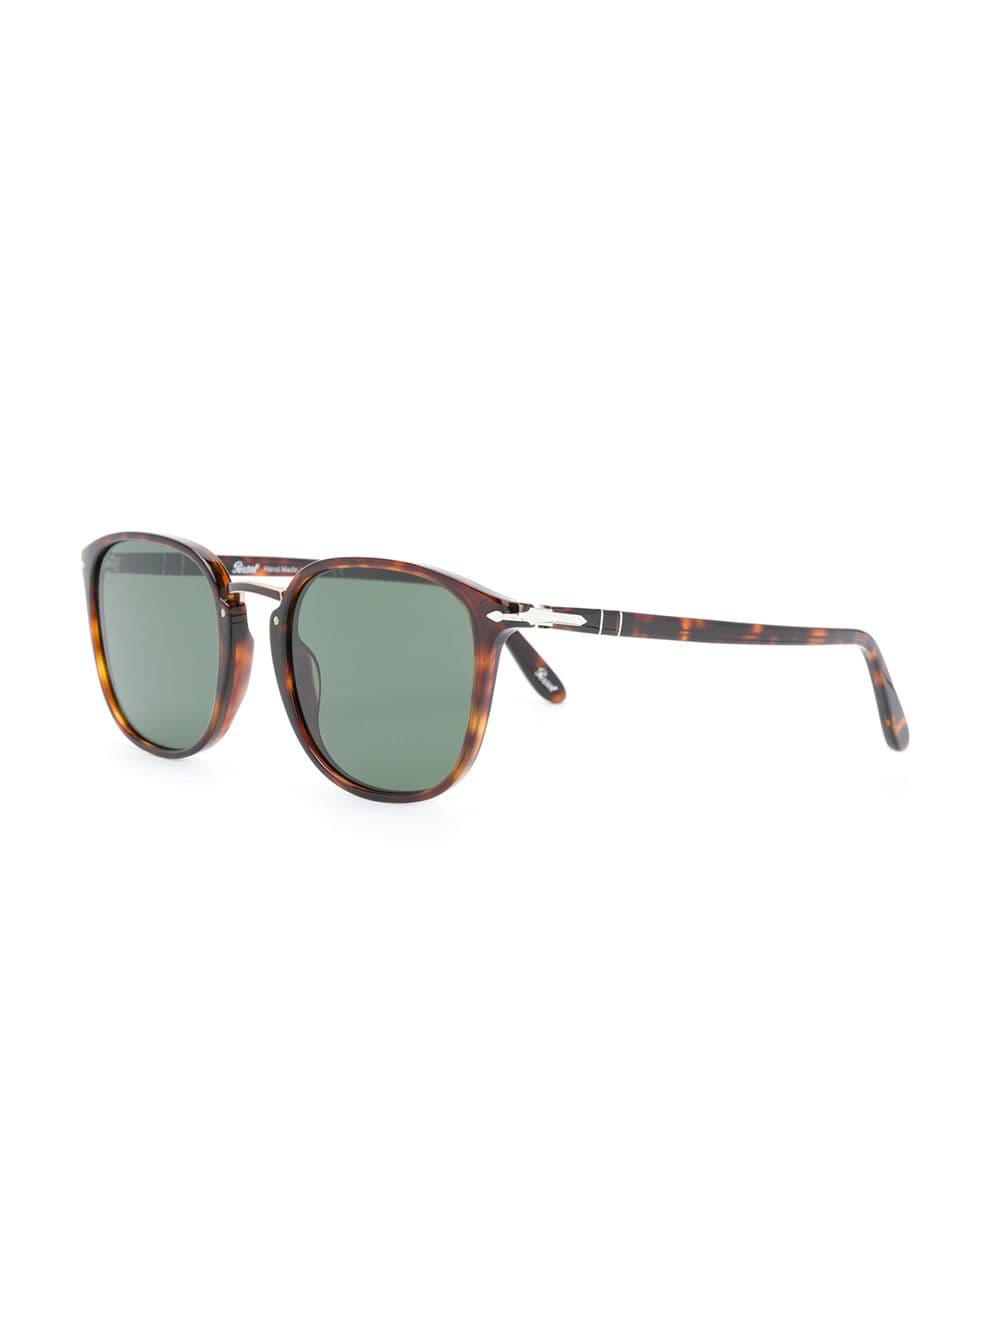 34b2df68d9 Lyst - Persol Square Frame Sunglasses in Brown